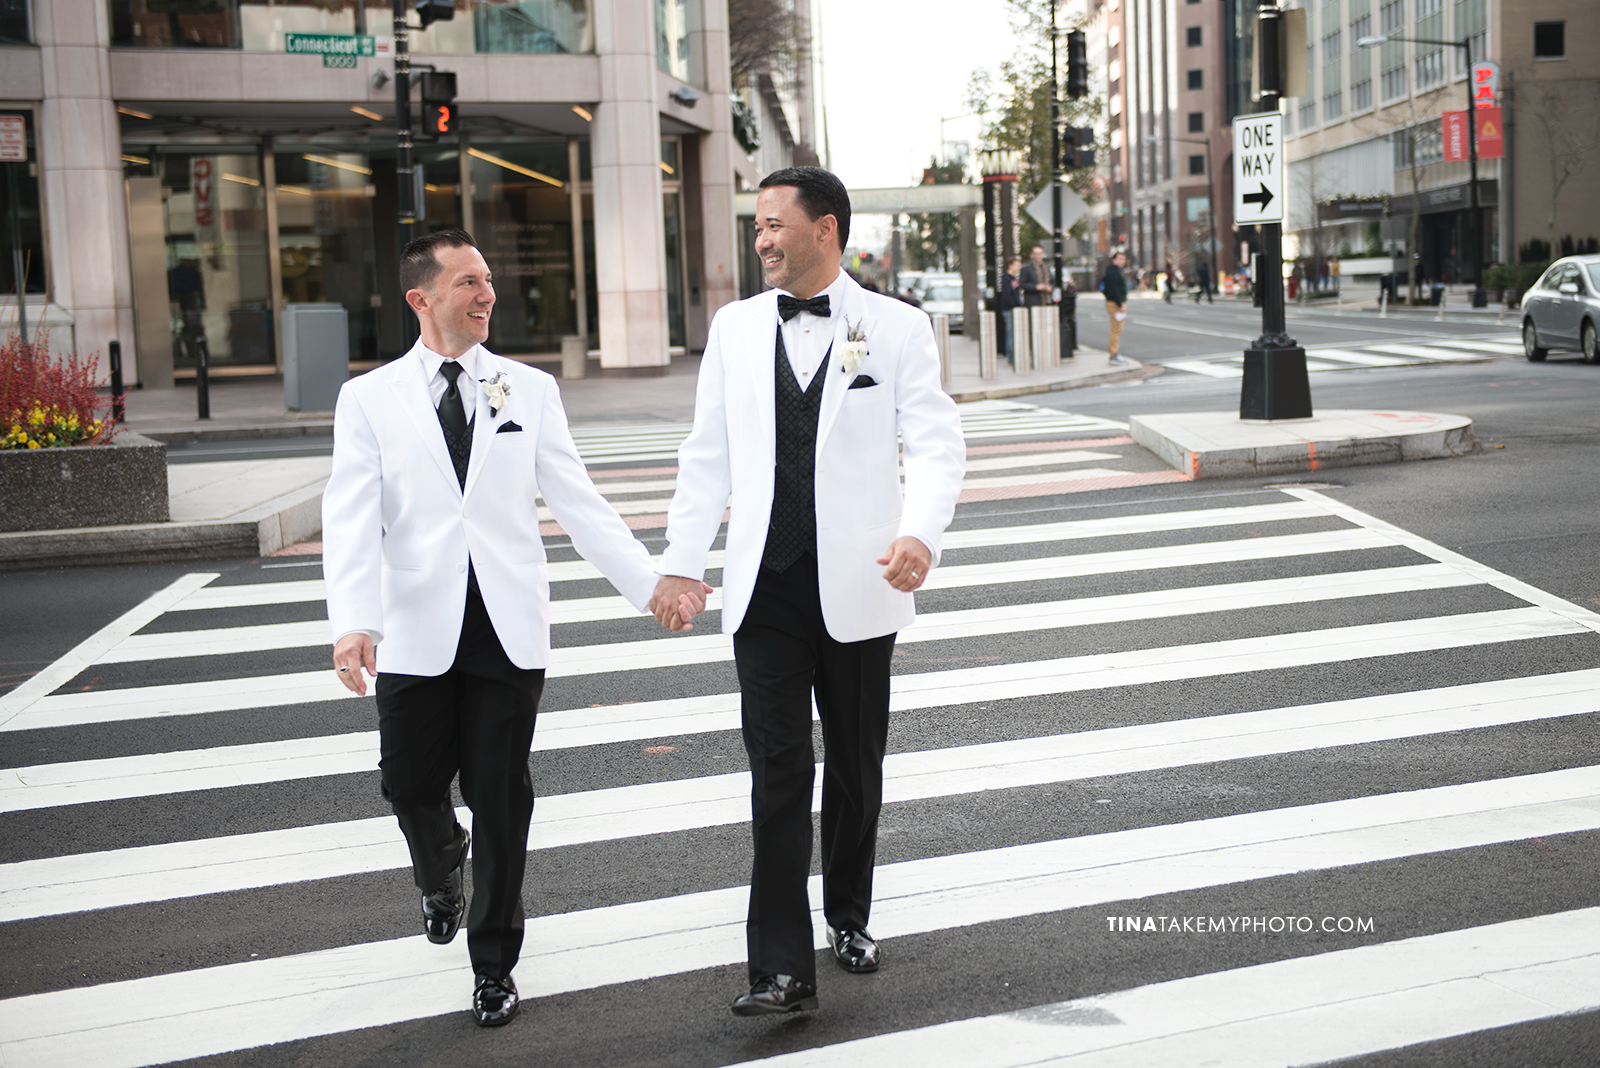 02-Washington-DC-Gay-Same-Sex-Wedding-Men-12-13-14-Mayflower-City-Crosswalk-Photographer (15)